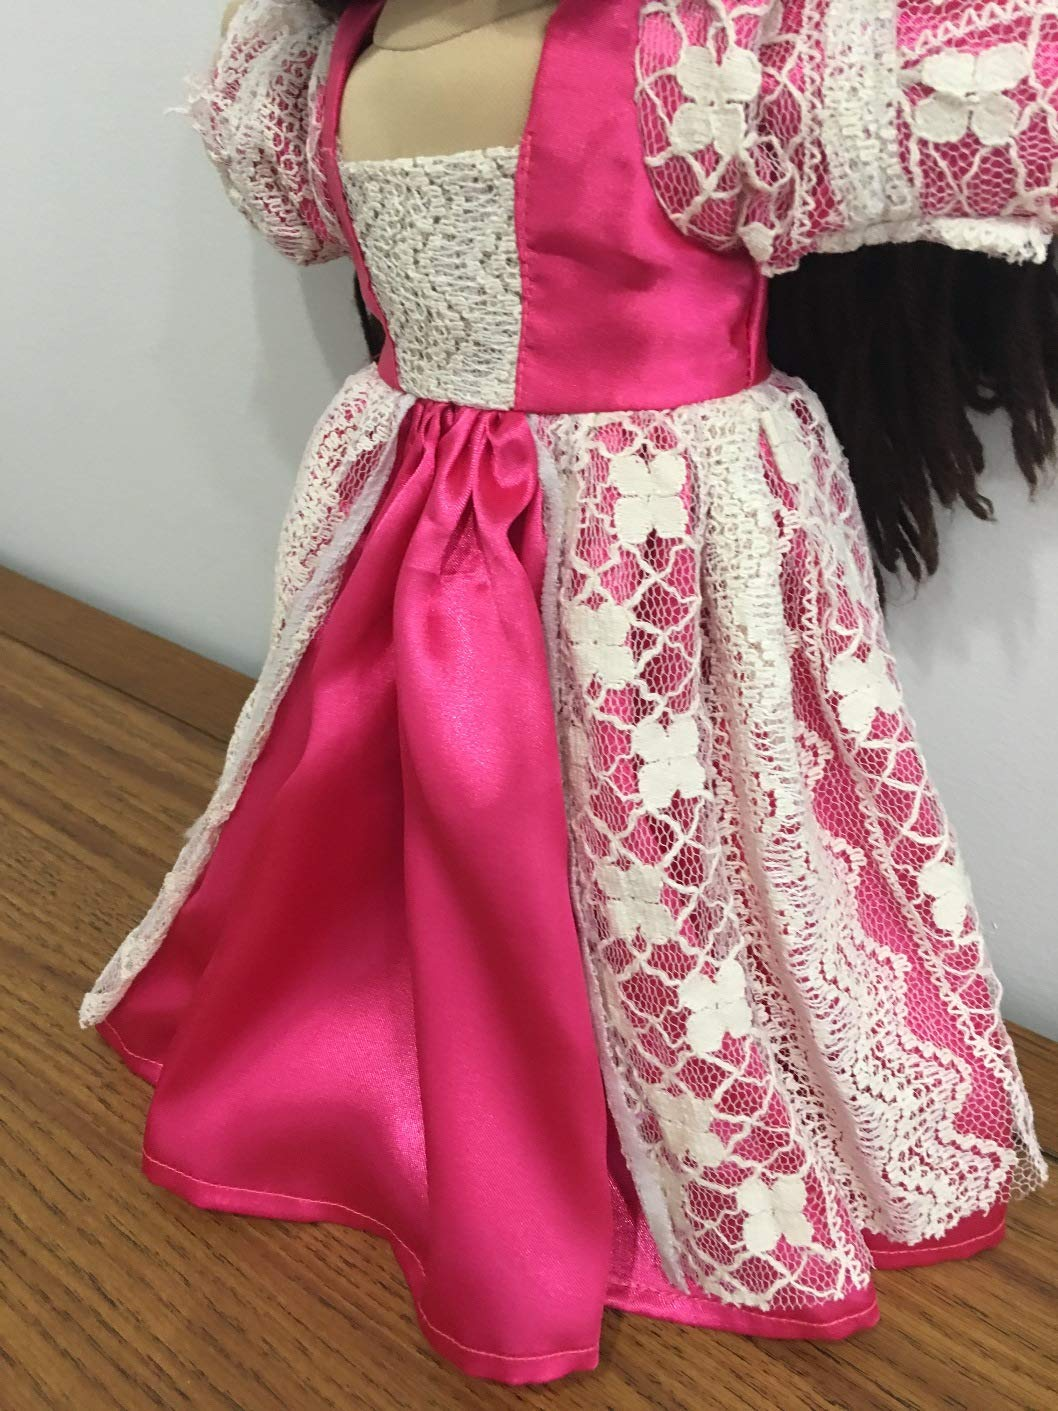 Dress Fits16 17 18 Cabbage Patch Kids Doll Clothes Gown Pink Colonial Renaissance Dress Handmade NO DOLL